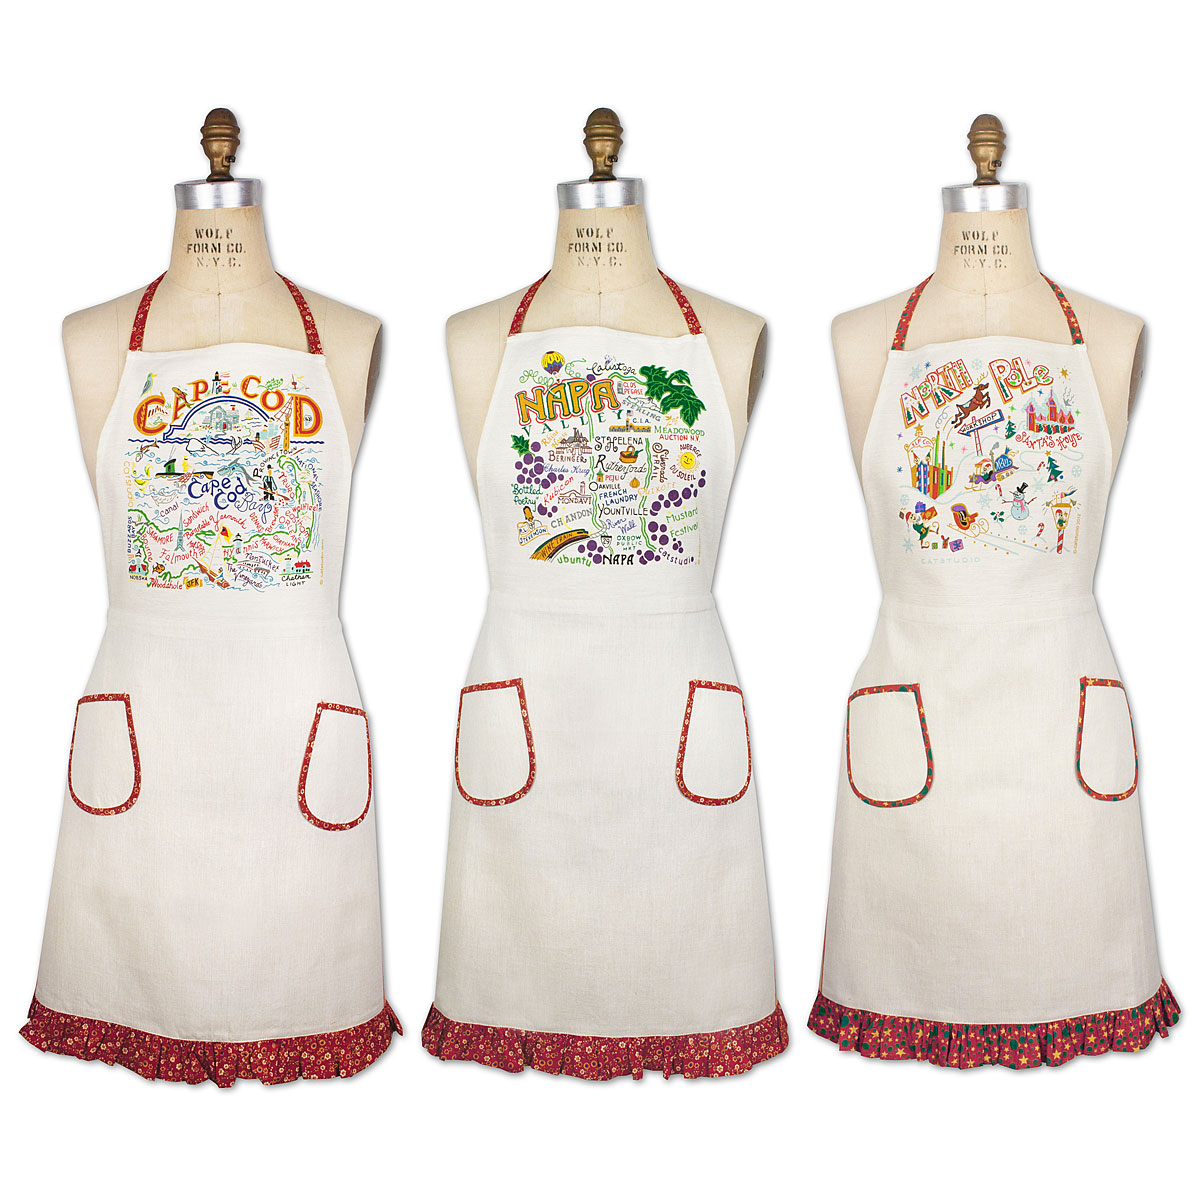 Apron For Kitchen : REGION APRONS Regional Printed Kitchen Apron UncommonGoods